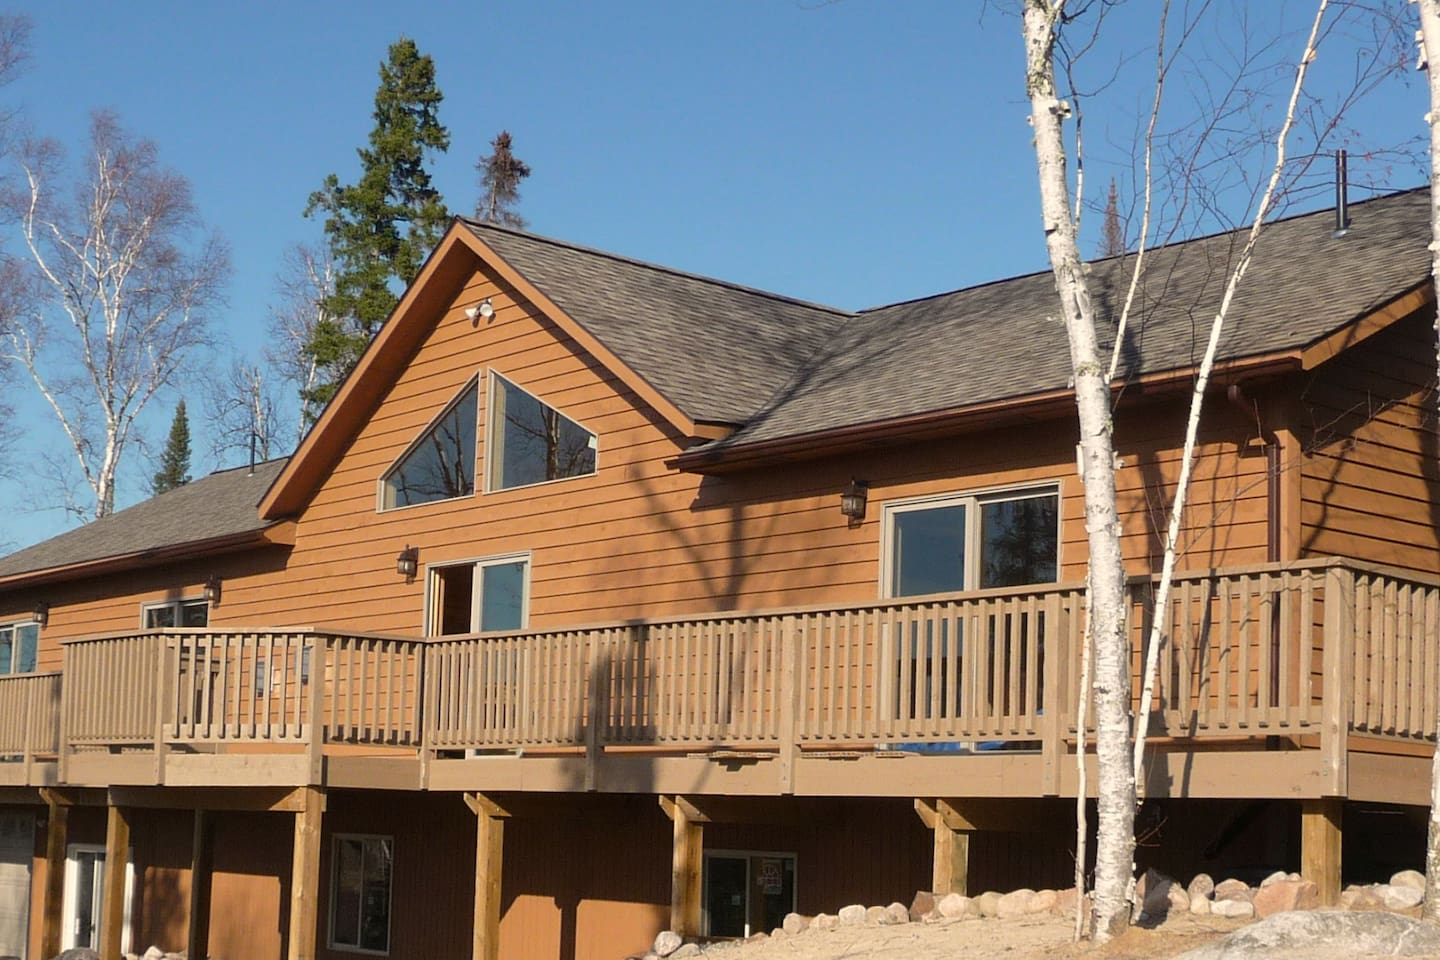 A 74 Large Deck With High Patio Table And Chairs For Viewing The Sunset Across